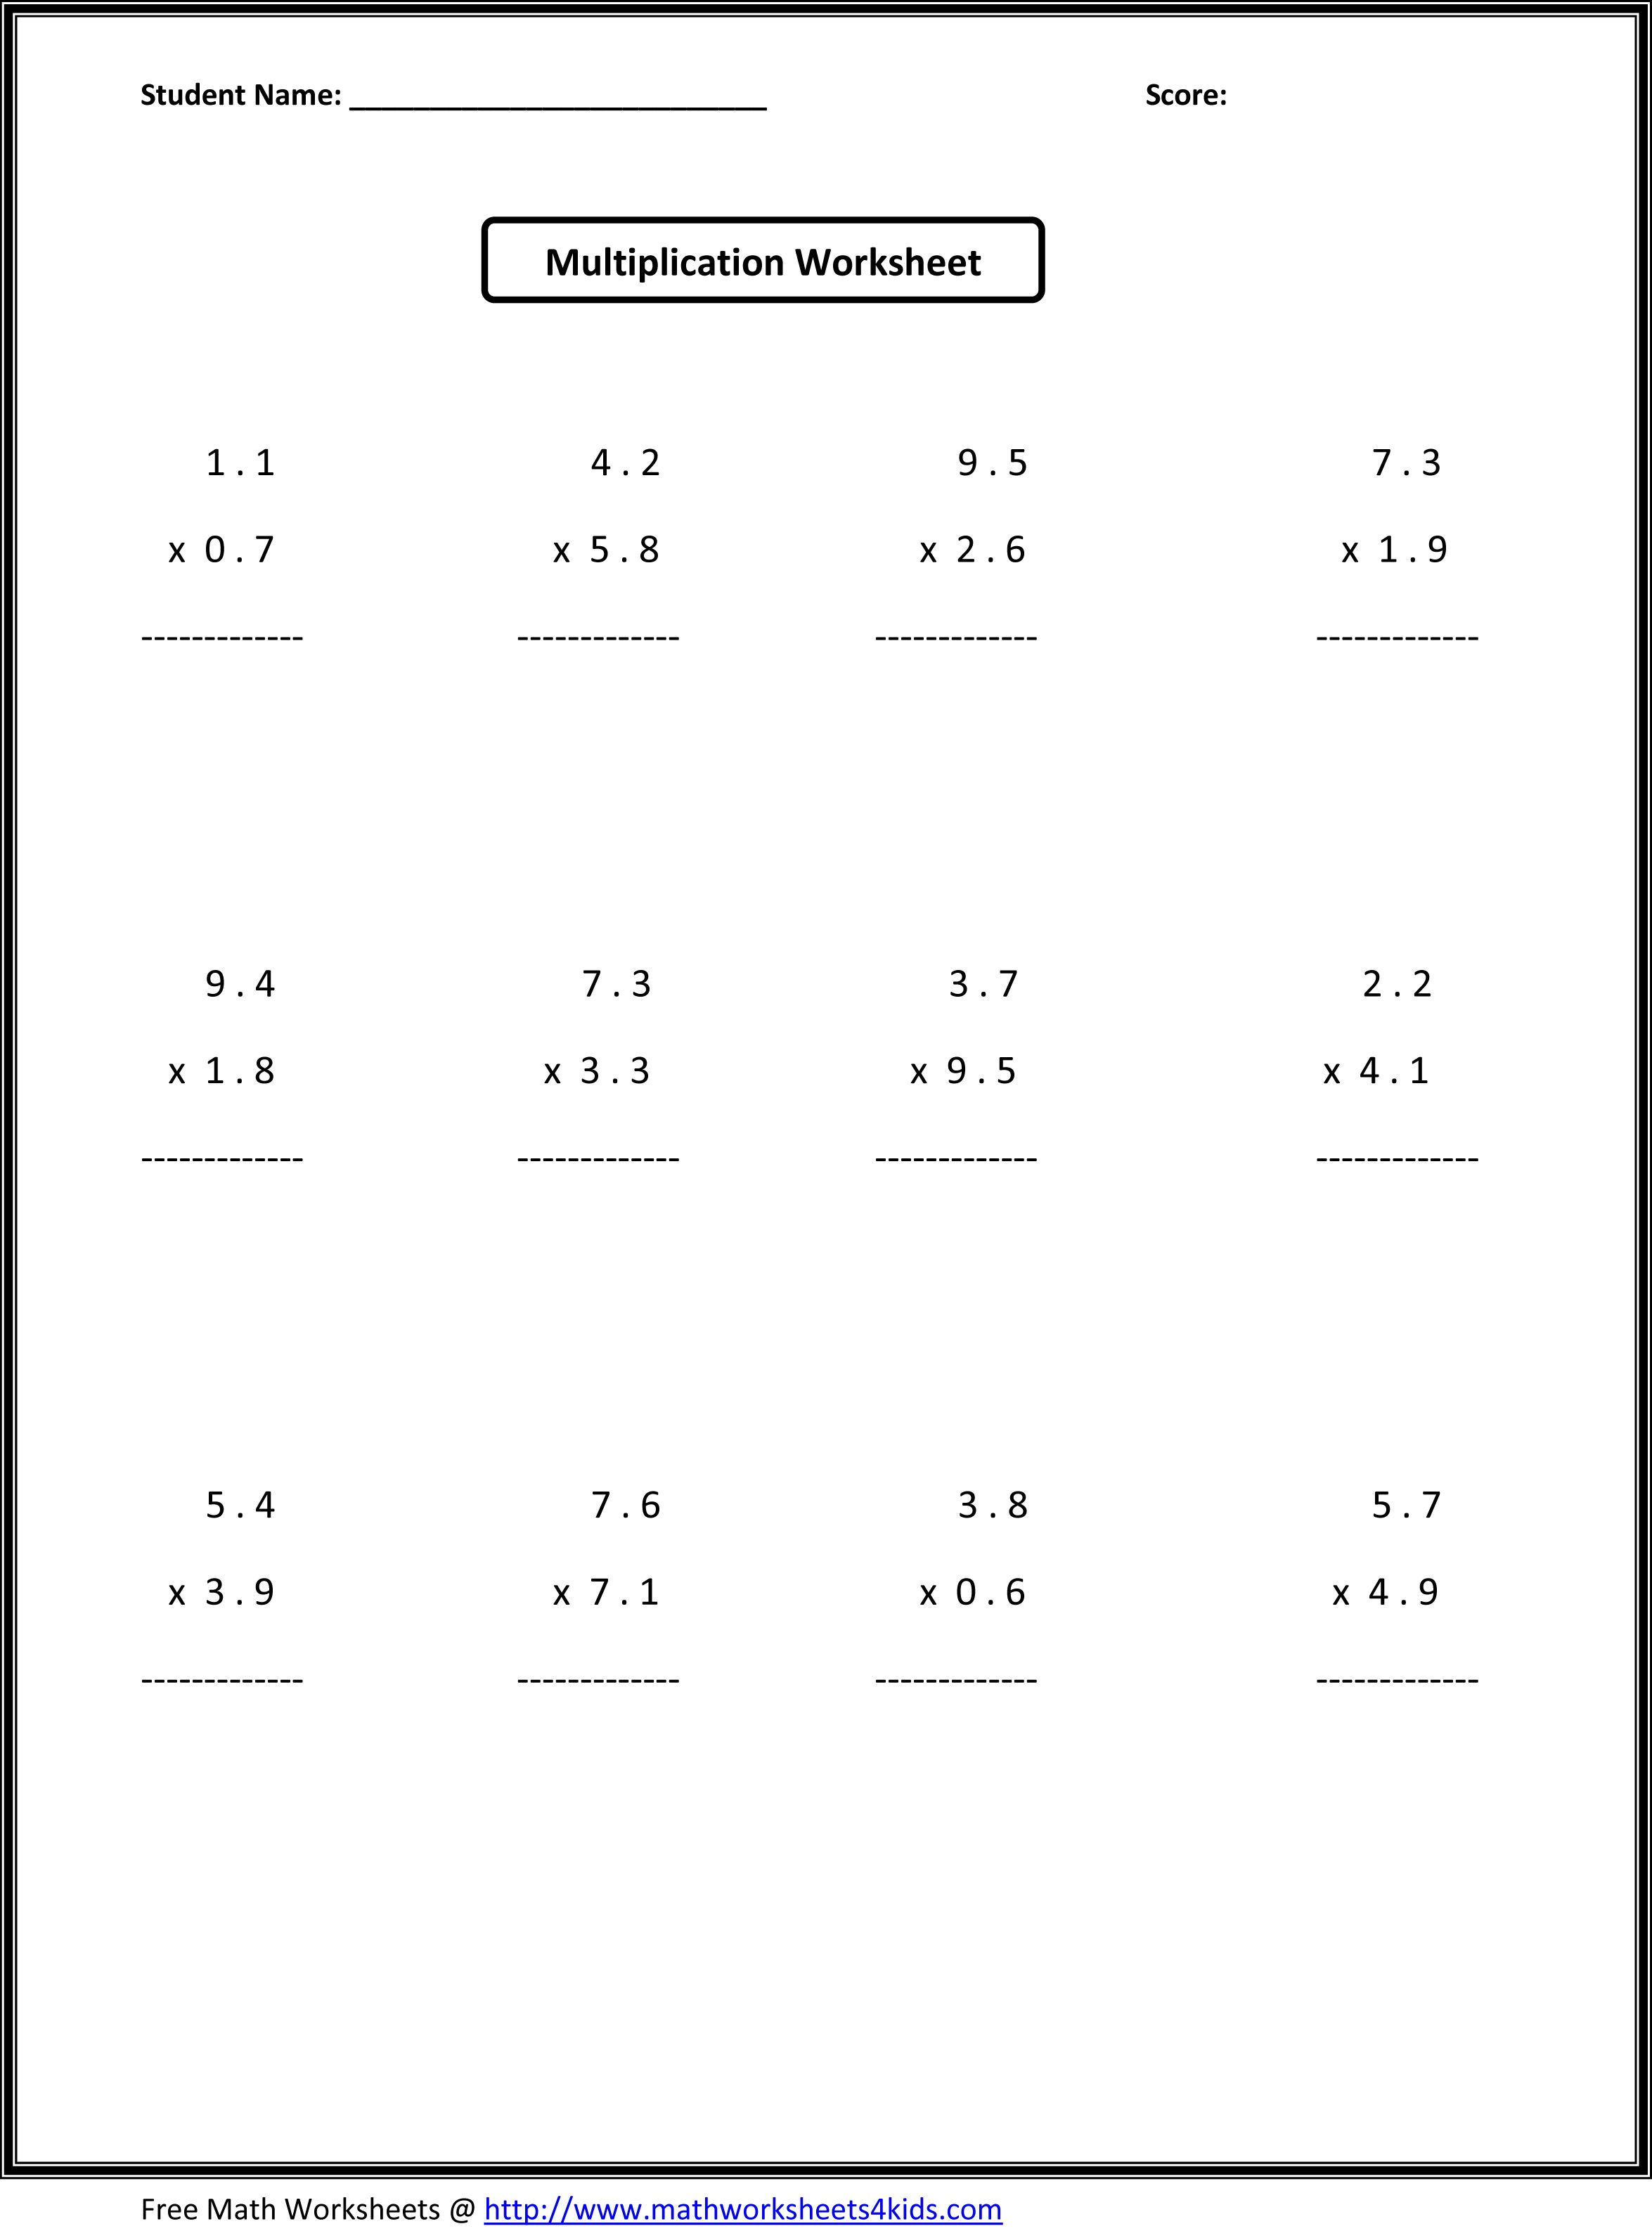 math worksheet : 7th grade math worksheets  value worksheets absolute value  : Math Worksheets 6th Grade Printable